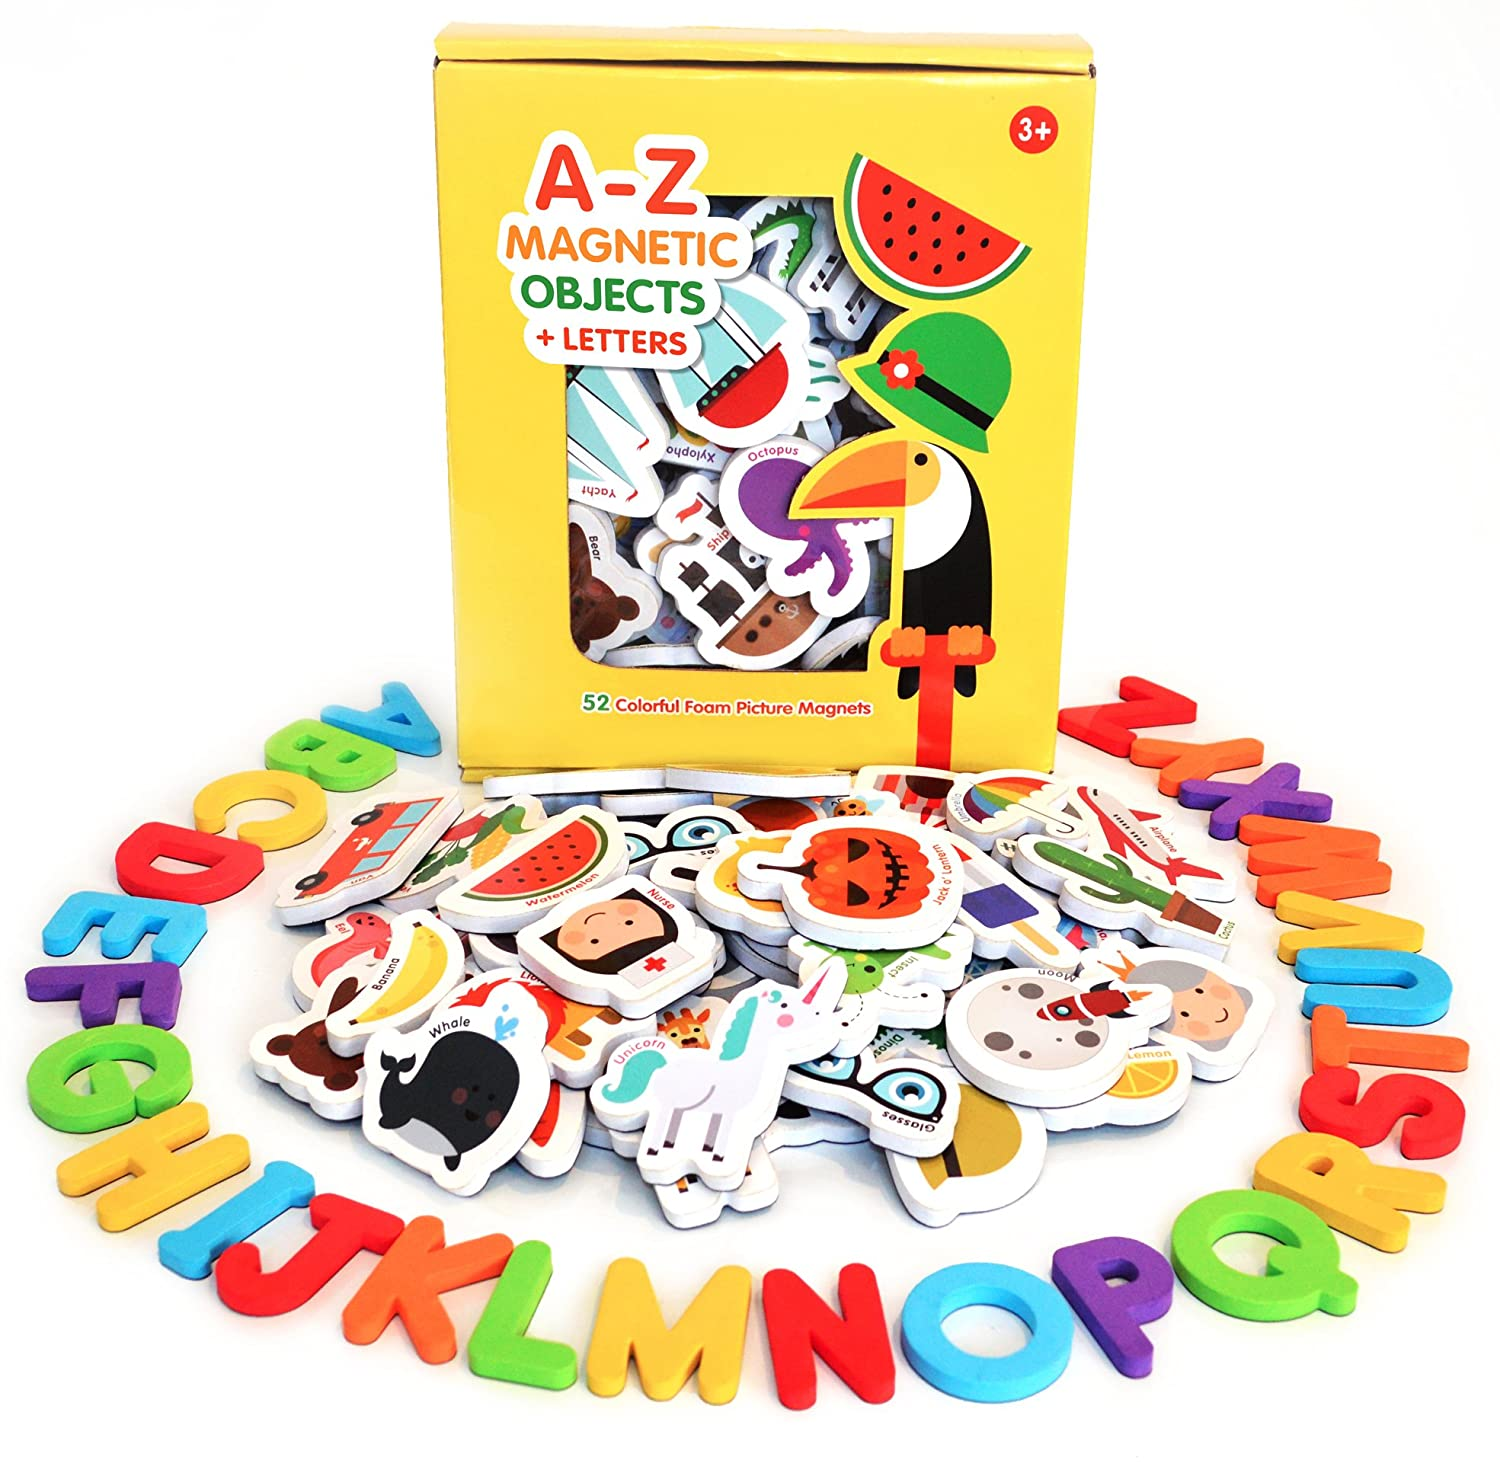 Amazon Magnetic Letters & Words Toys & Games